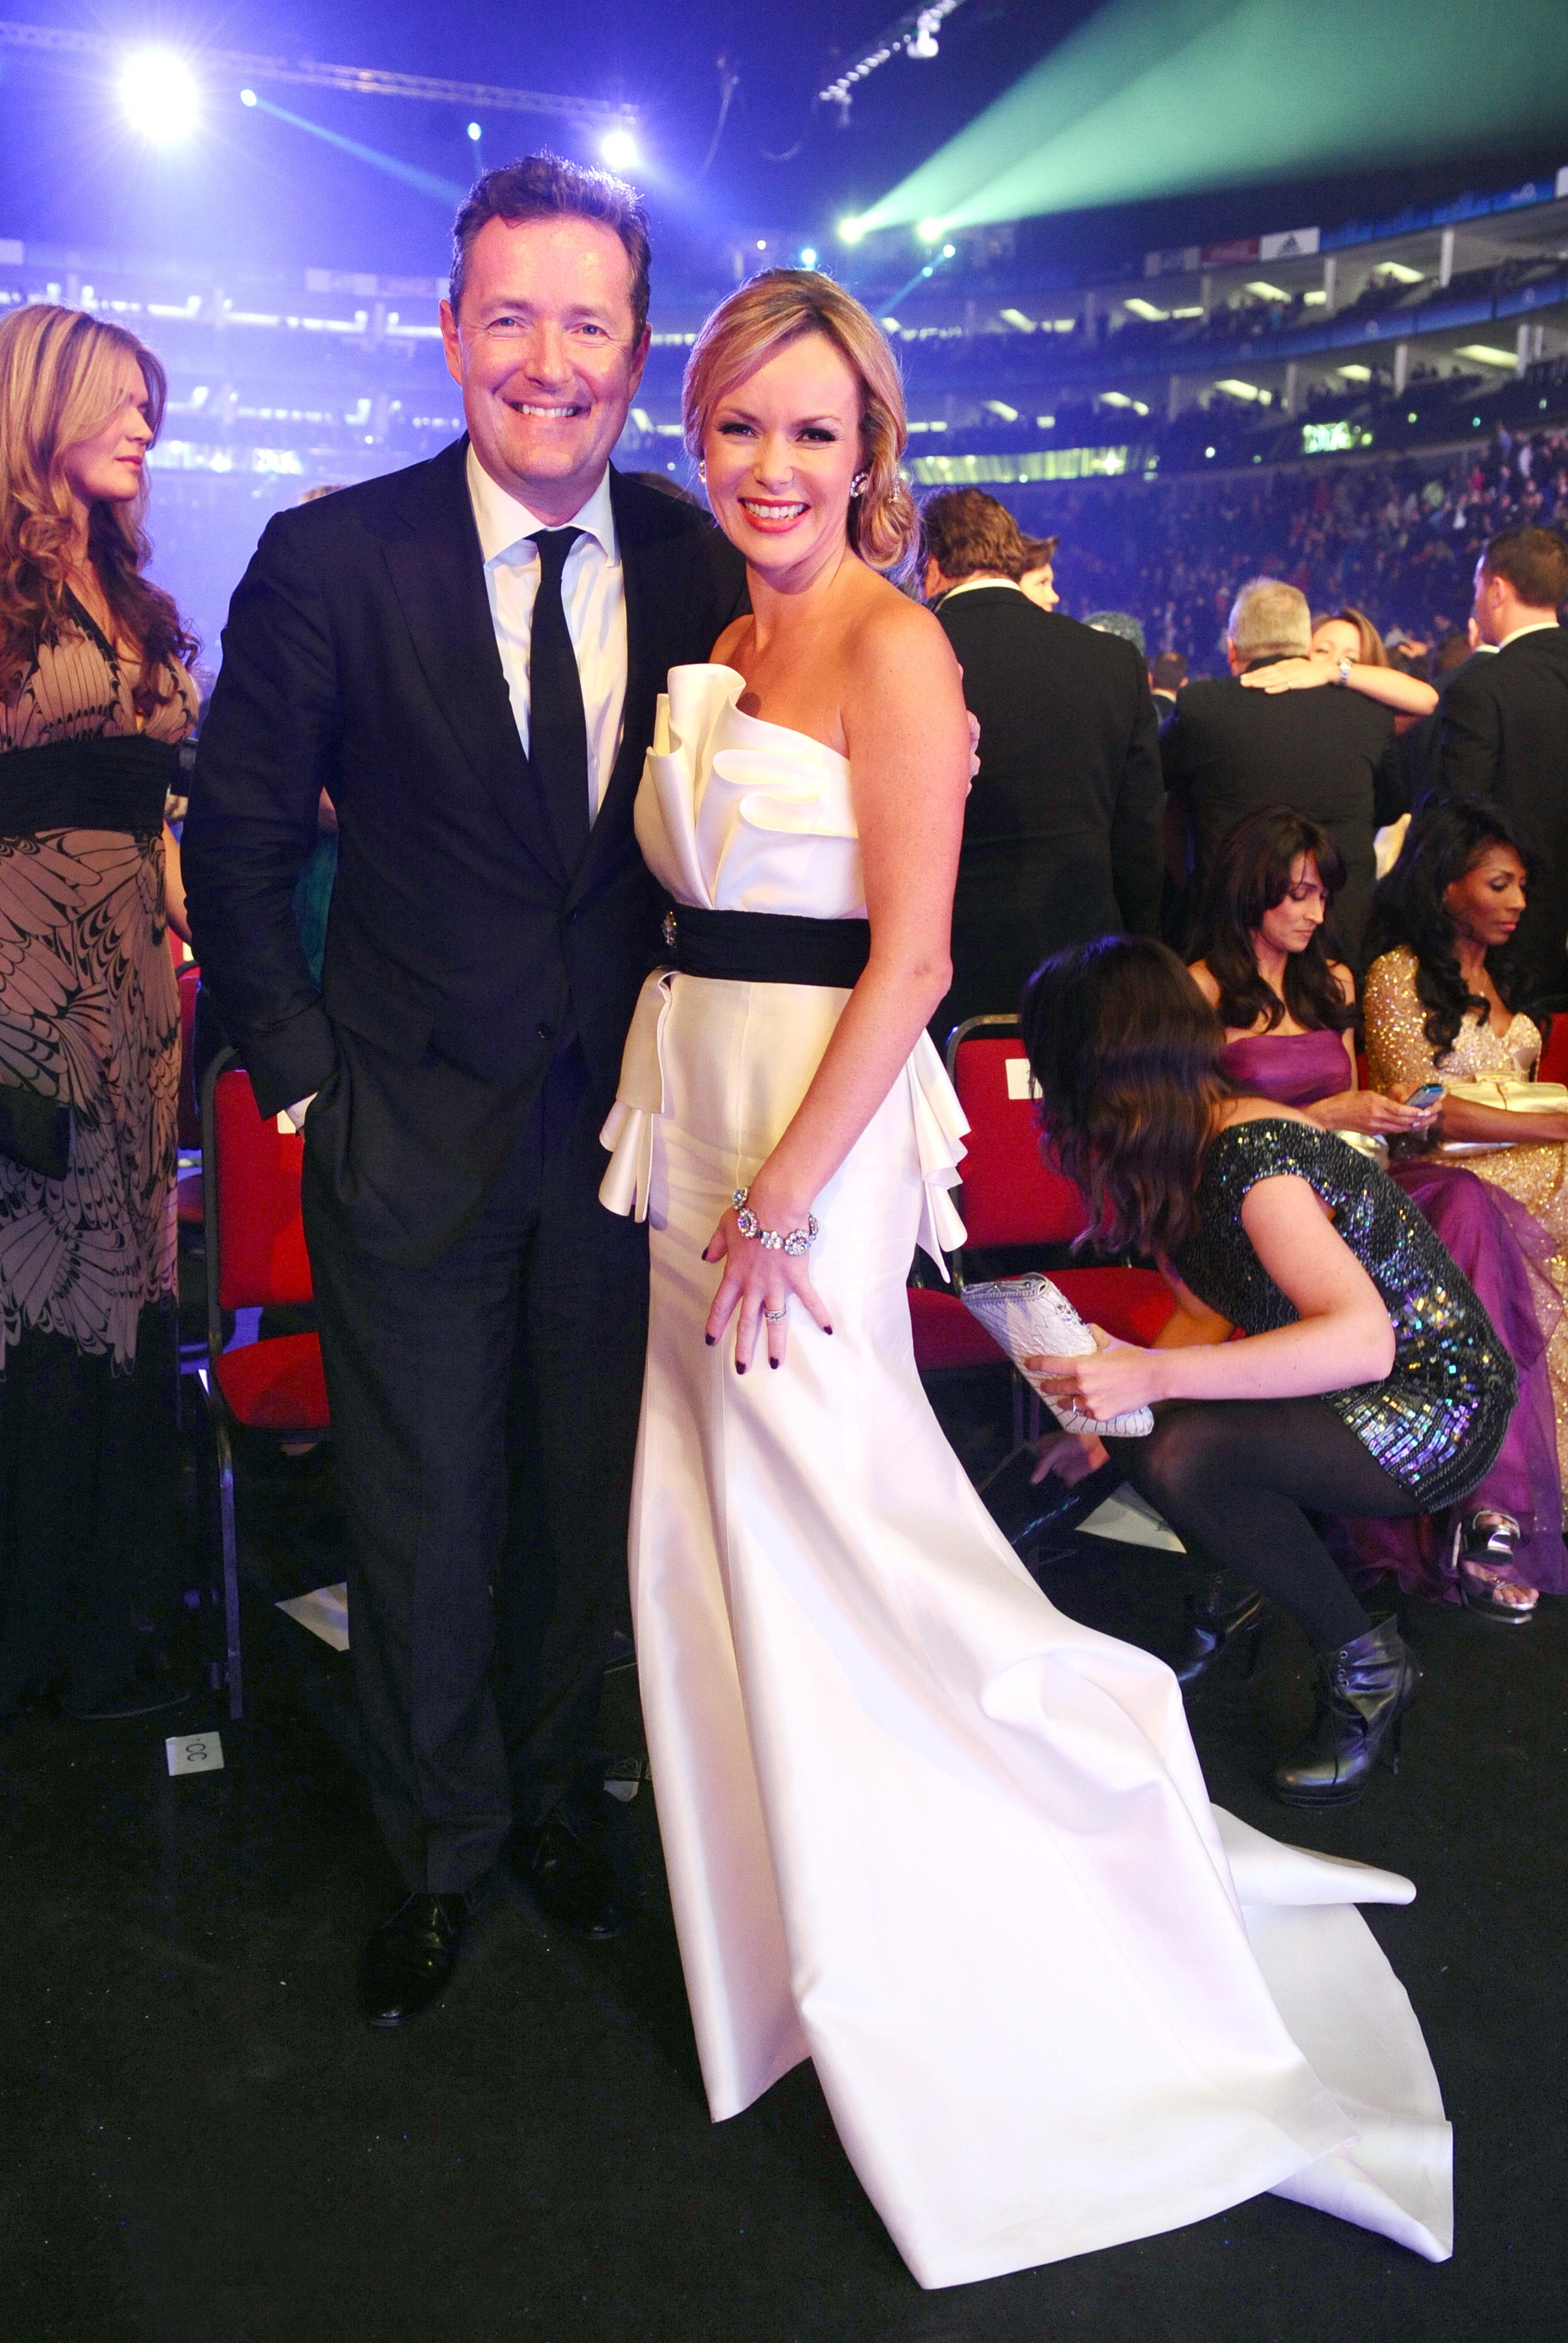 Piers Morgan and Amanda Holden during the National Television Awards 2010, at the 02 Arena, London.